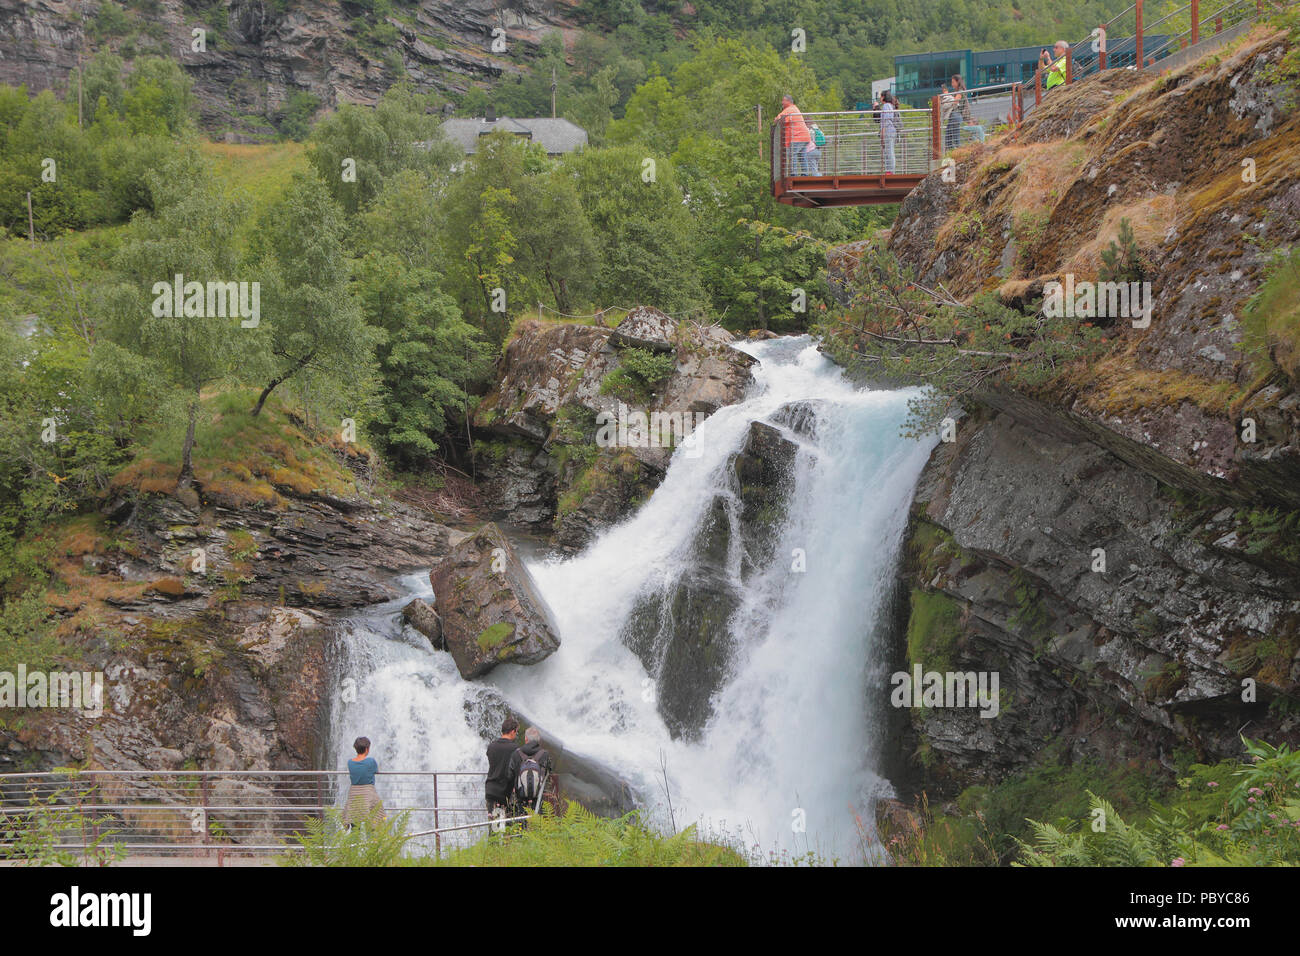 Falls and observation decks. Geiranger, Norway - Stock Image